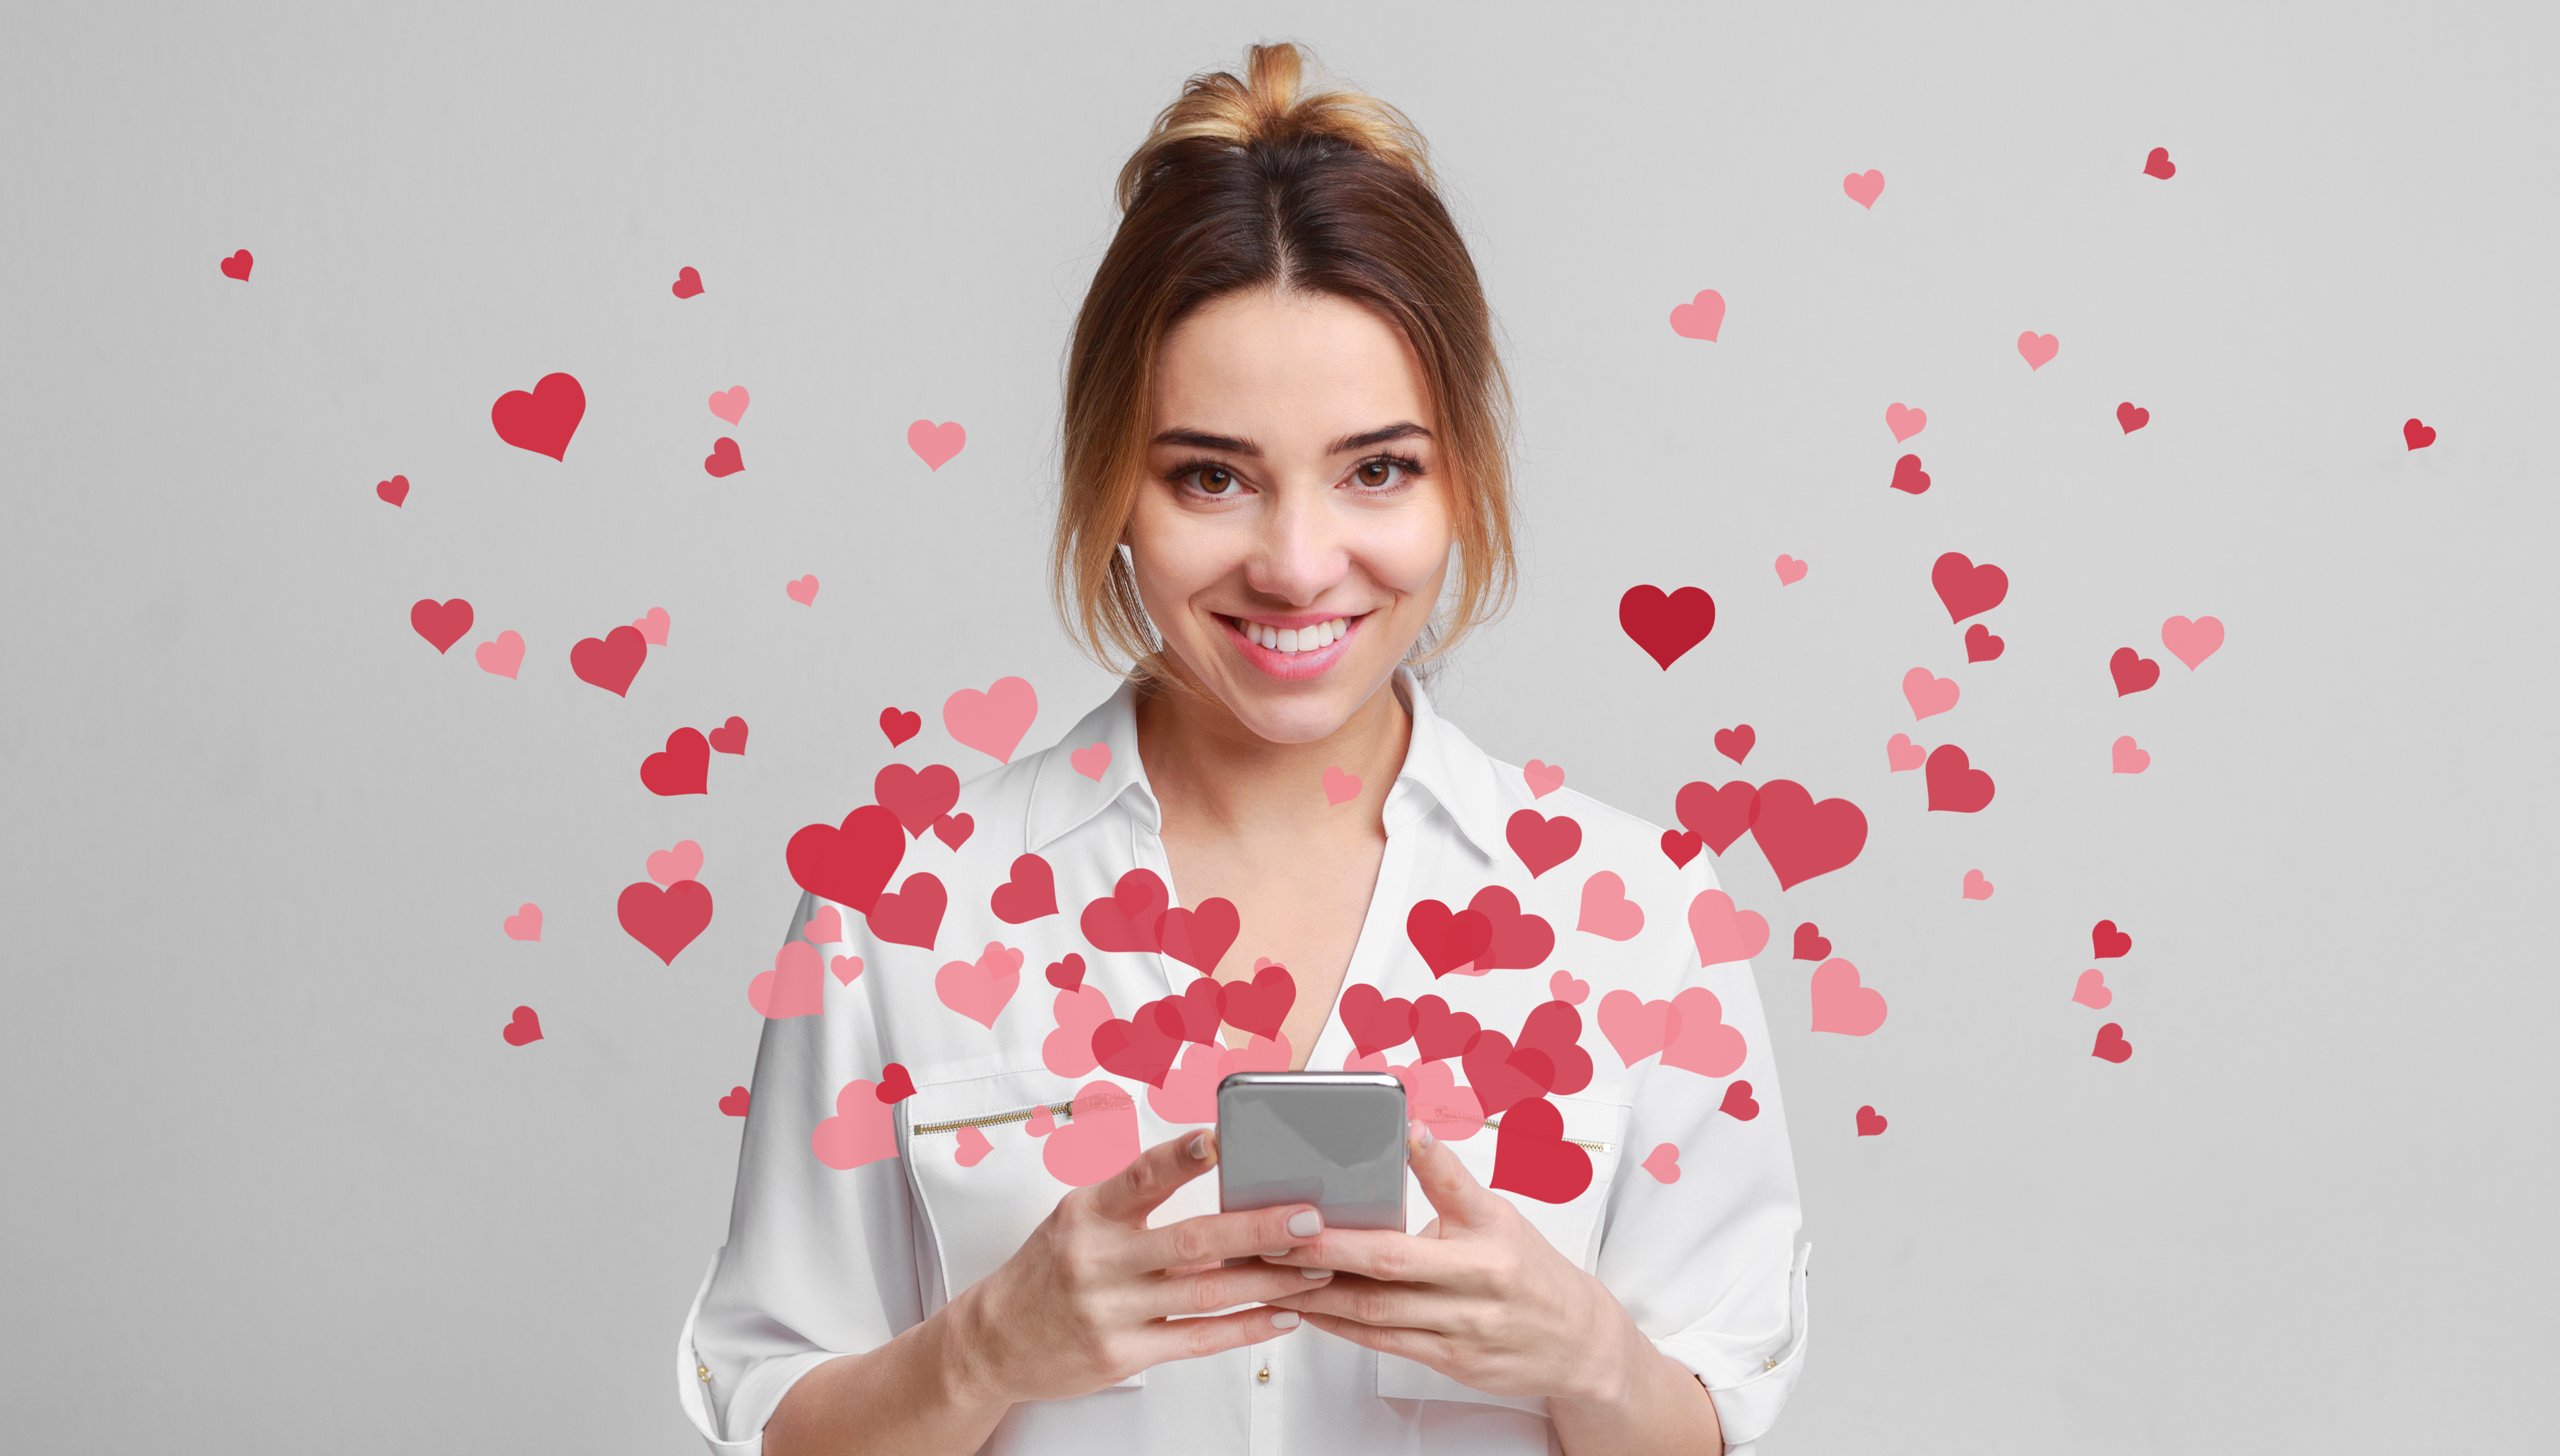 How Do You Make Your Bio Stand Out On Dating Apps And Dating Sites?